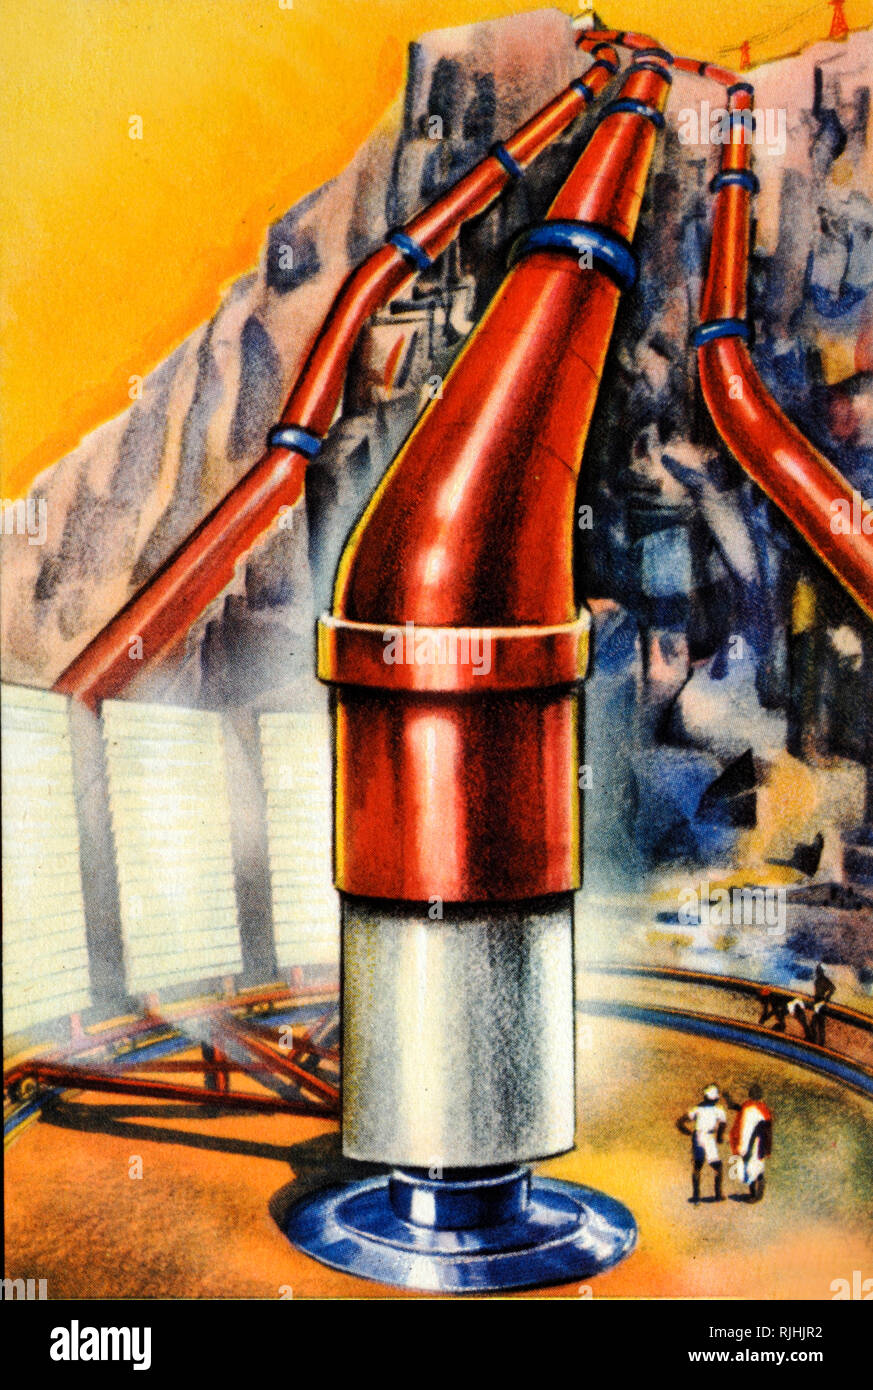 Futuristic Solar Energy Mirrors or Solar Panels Reflecting Sunlight Onto Central Turbine and Hot Water Pipes (Illustration c1940) - Stock Image